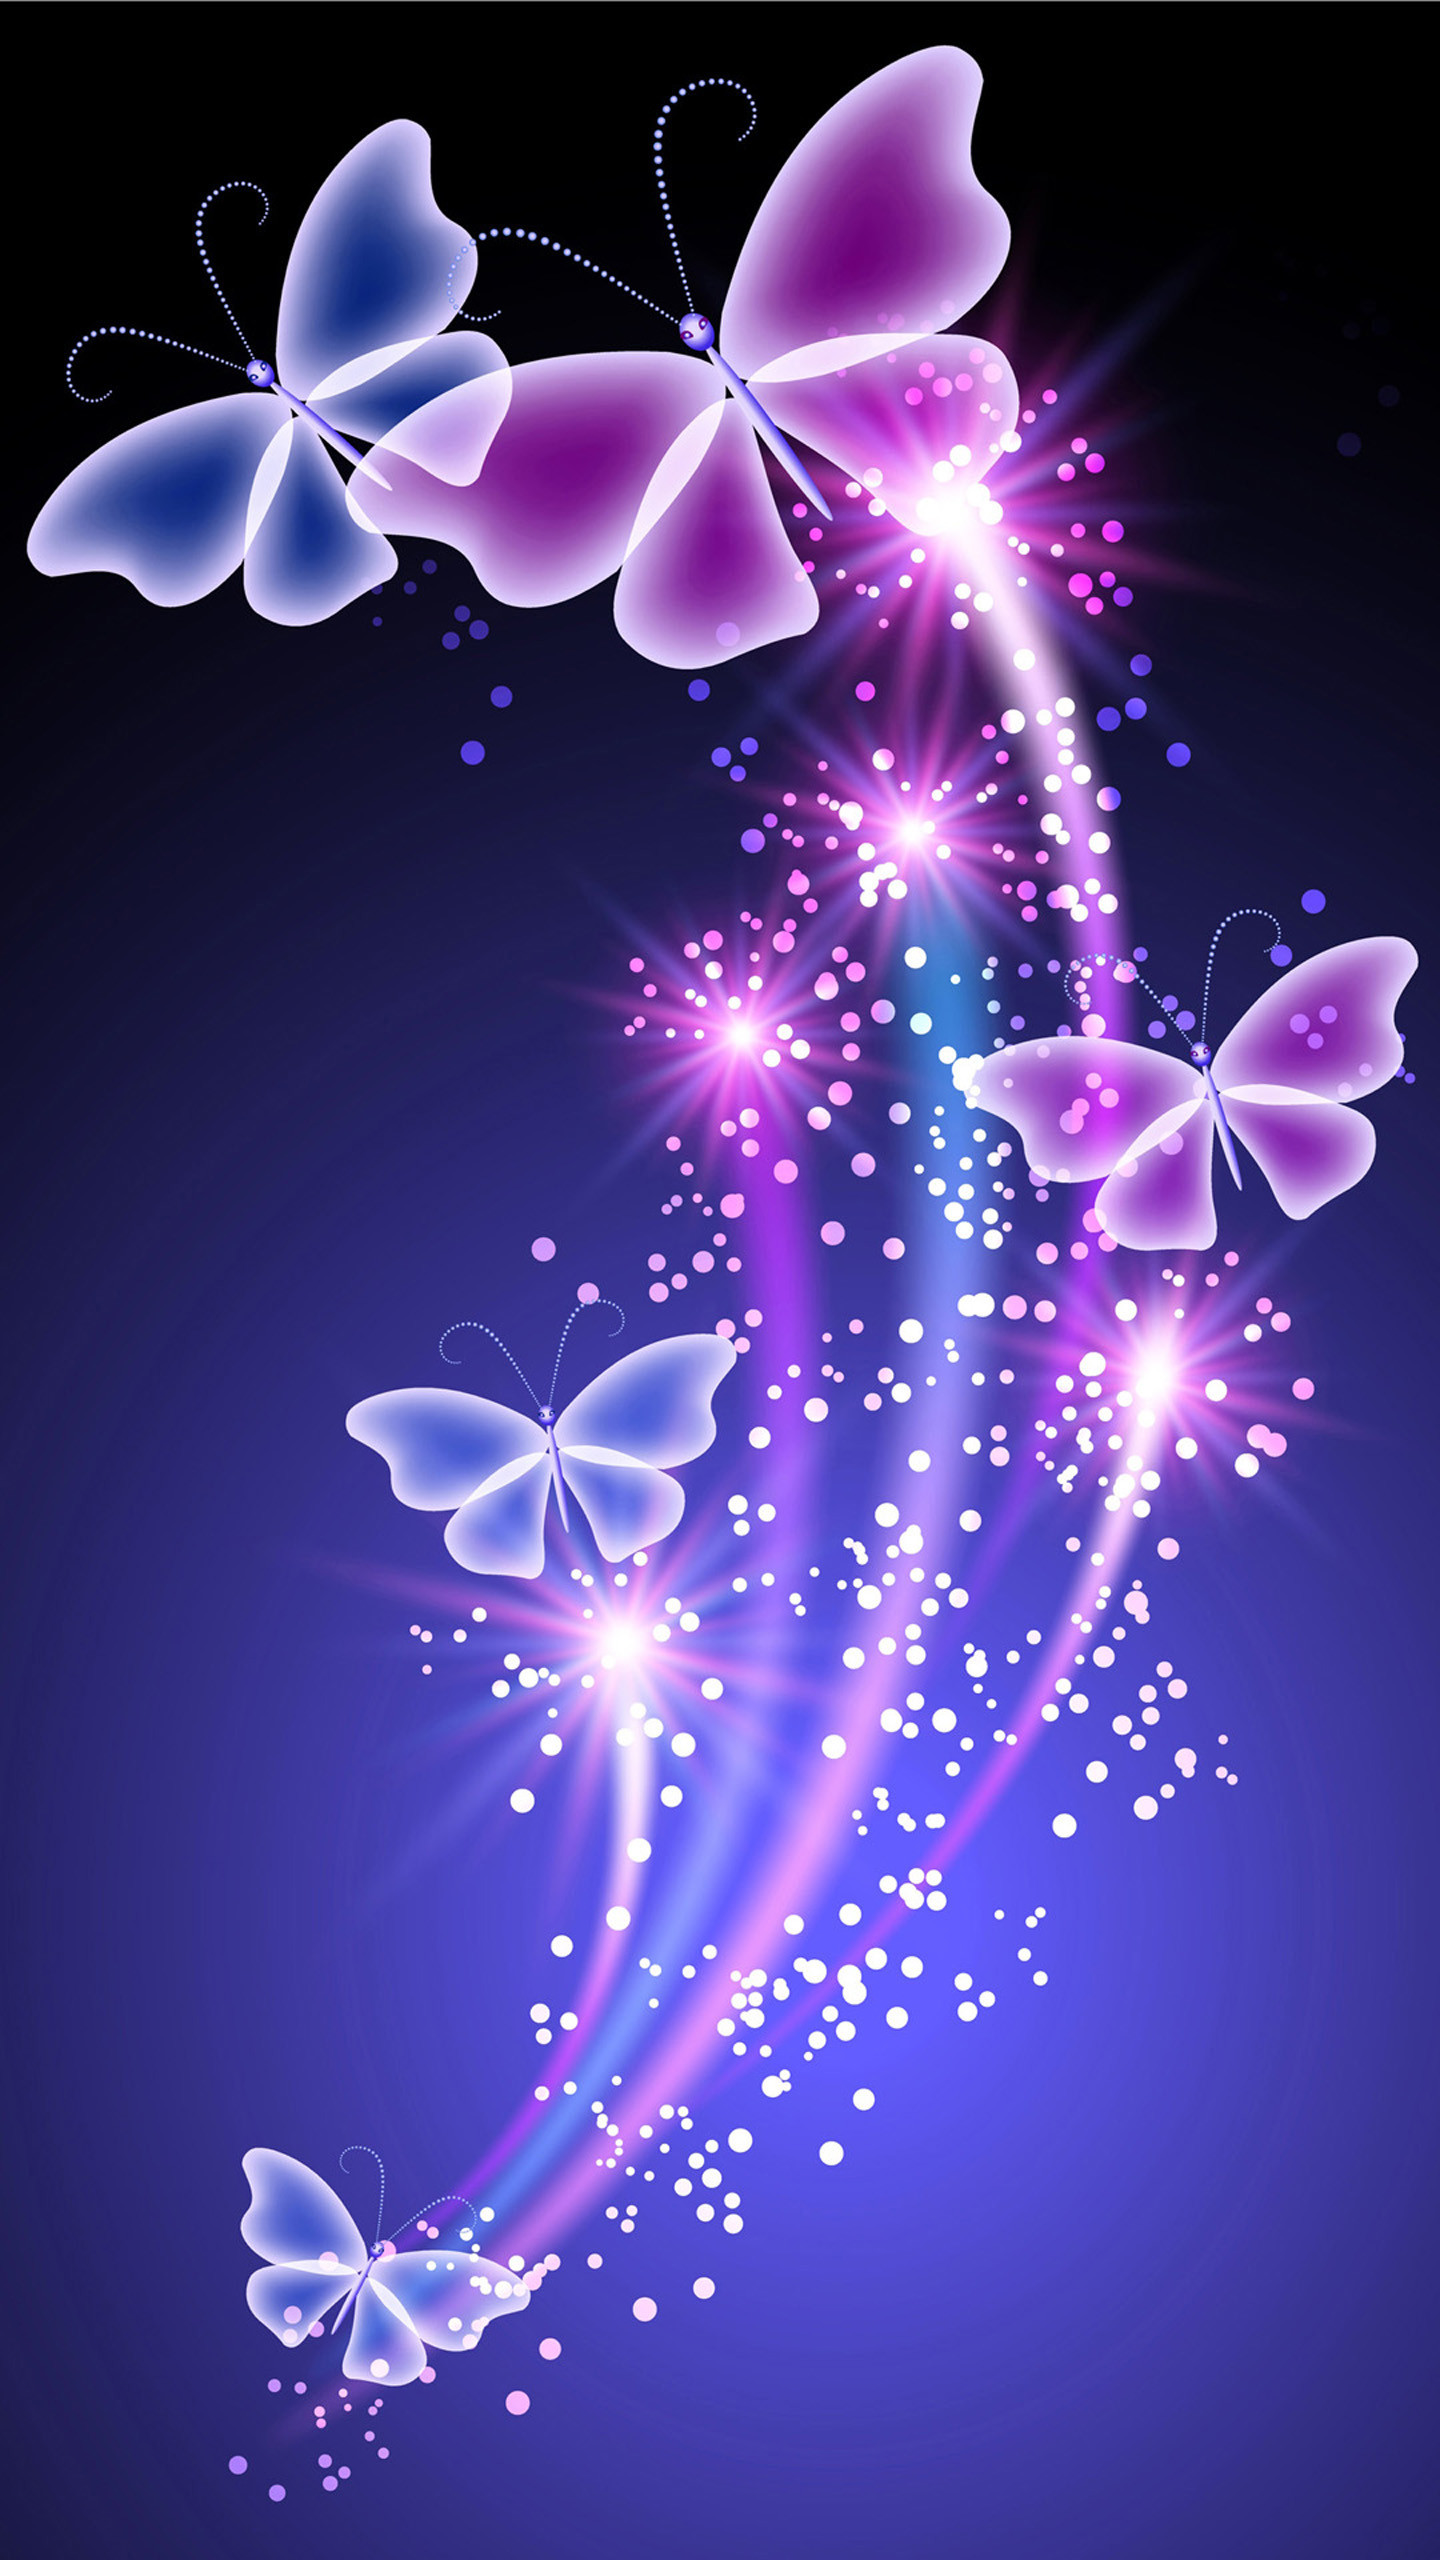 1440x2560 4K Ultra HD-Butterfly Wallpapers | Wonderful Butterfly Pictures